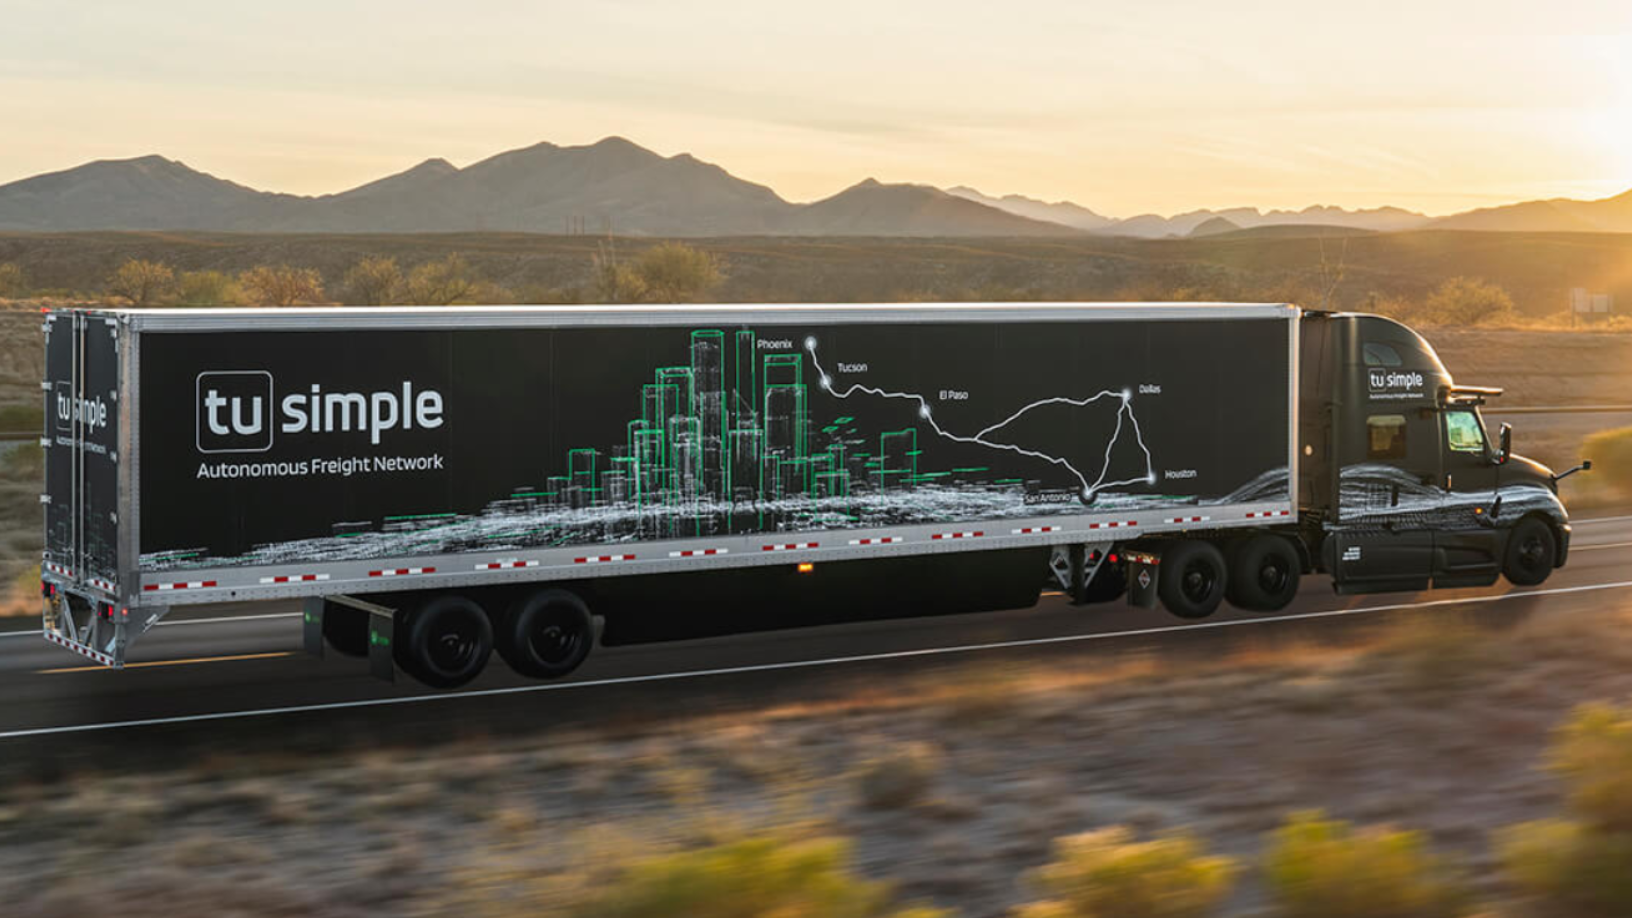 TuSimple: Banking on autonomous trucking in the US